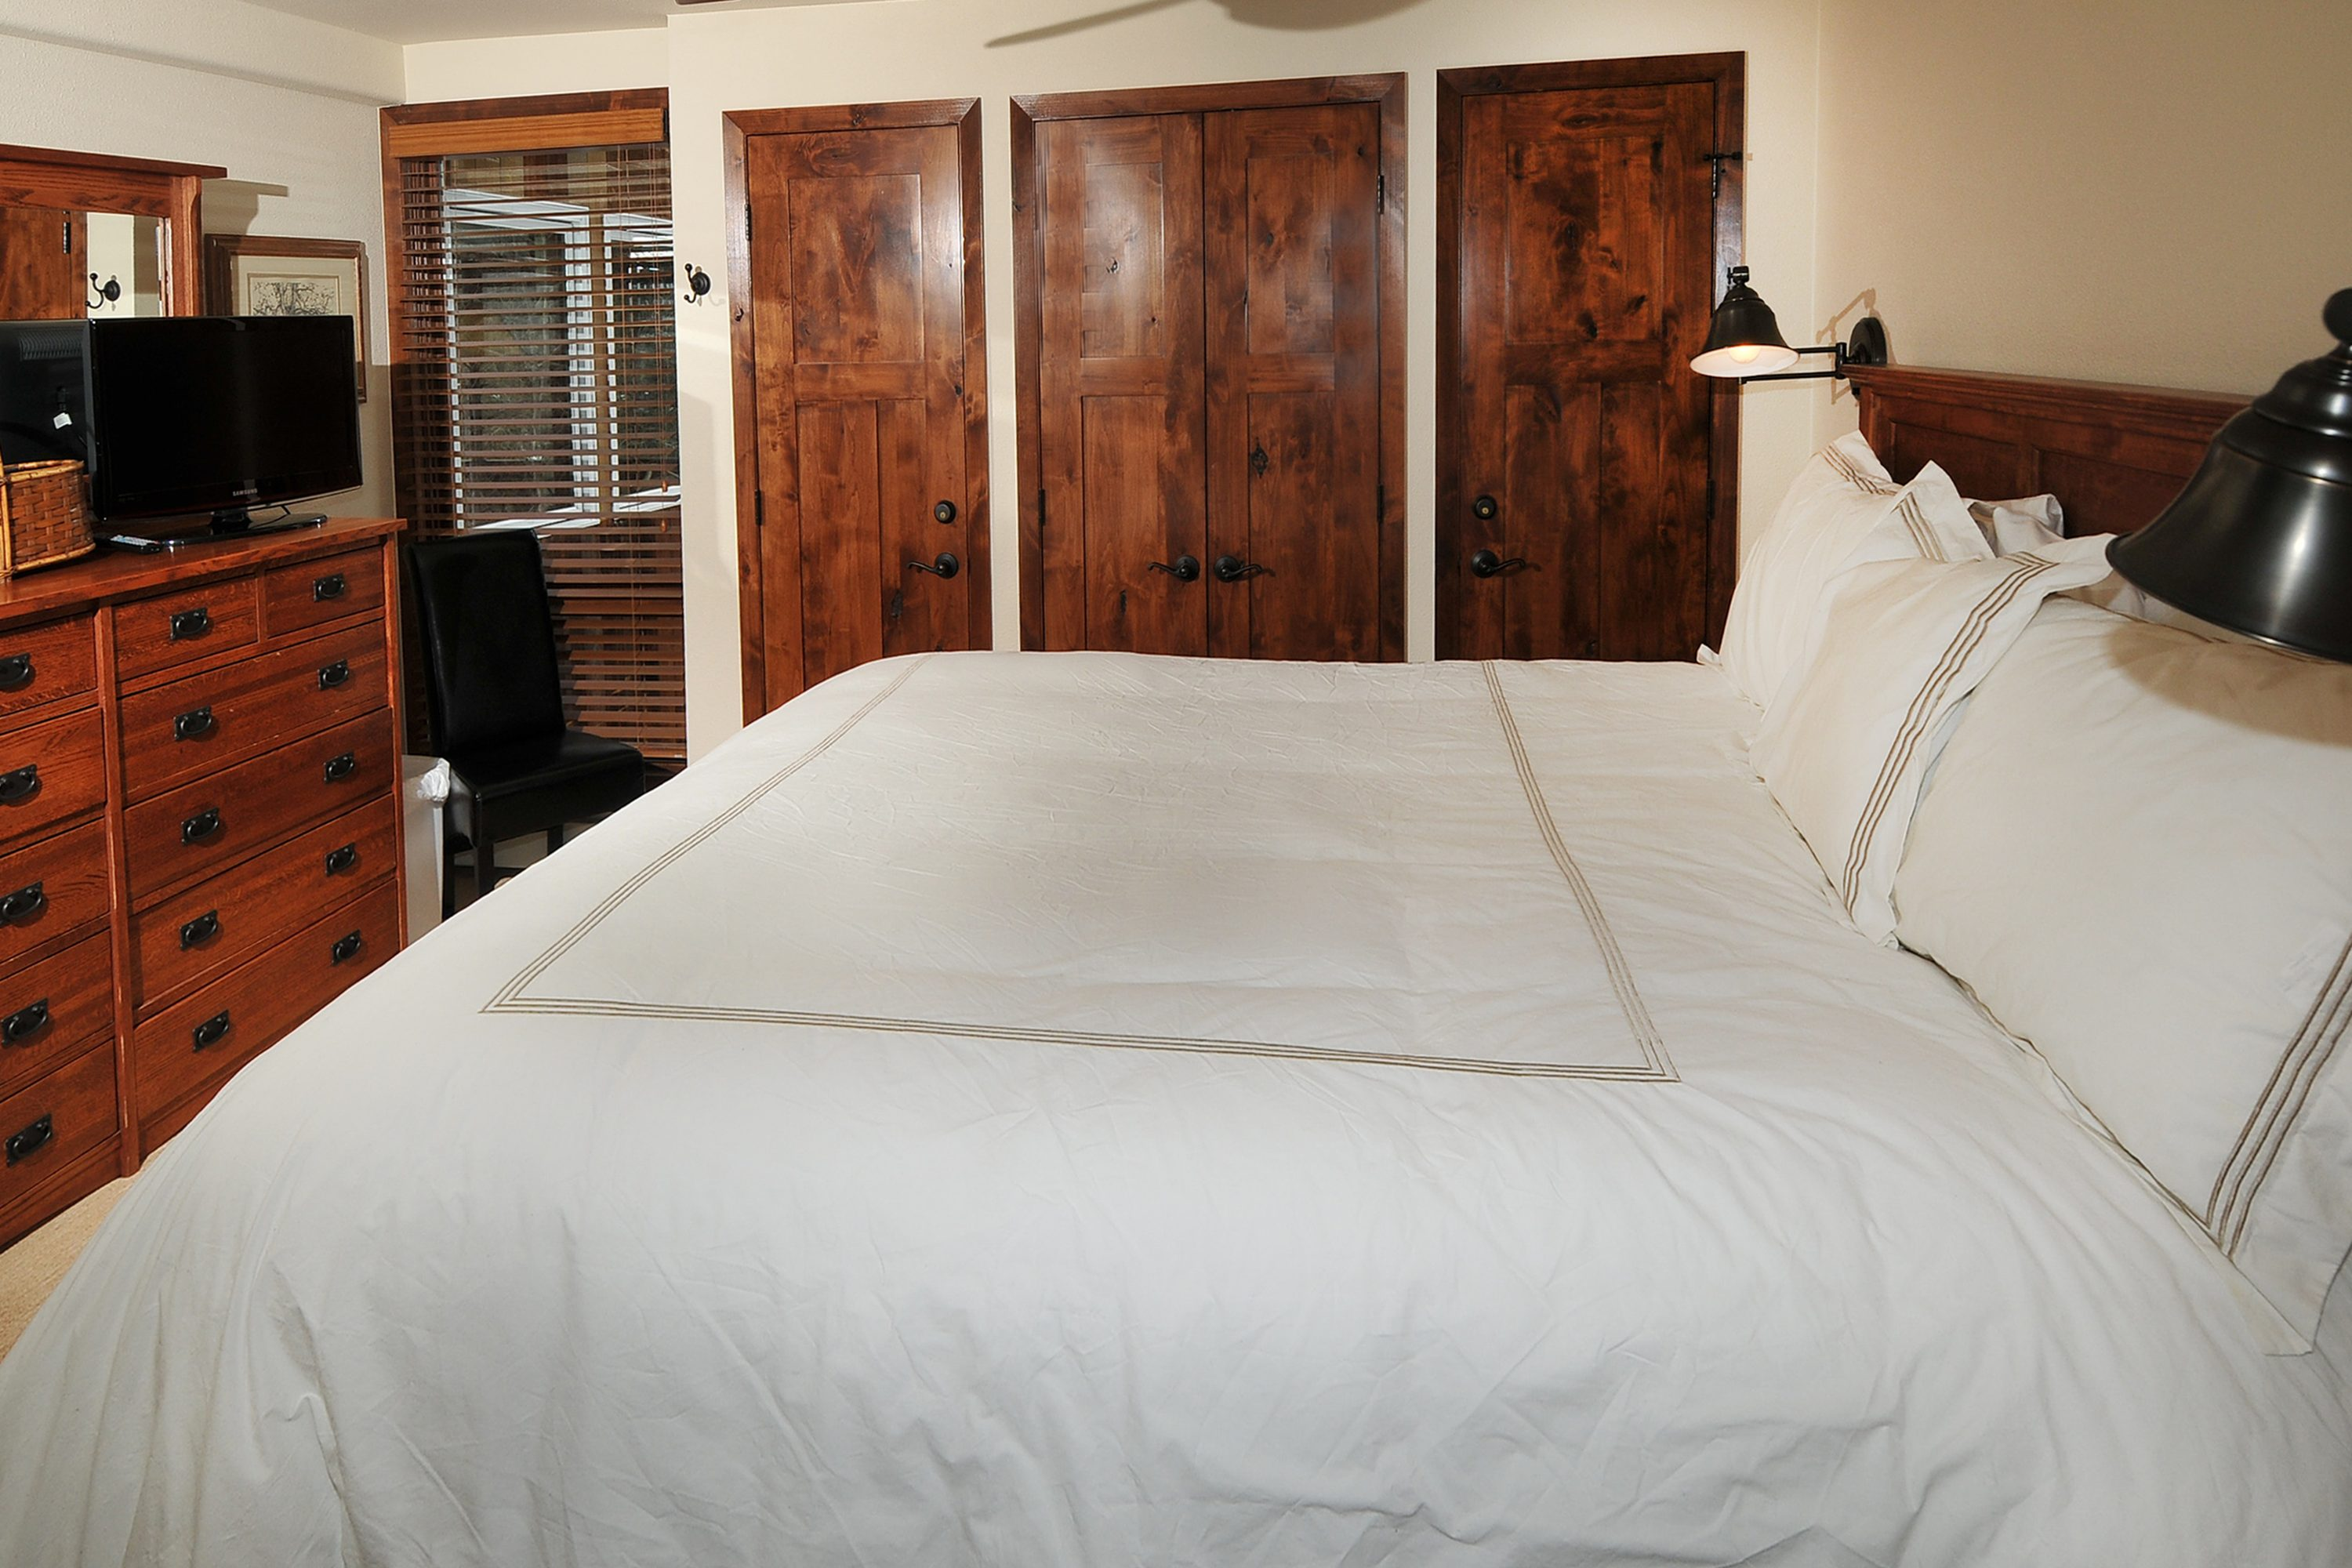 Rest up for your next big day in Vail in the master bedroom's king bed